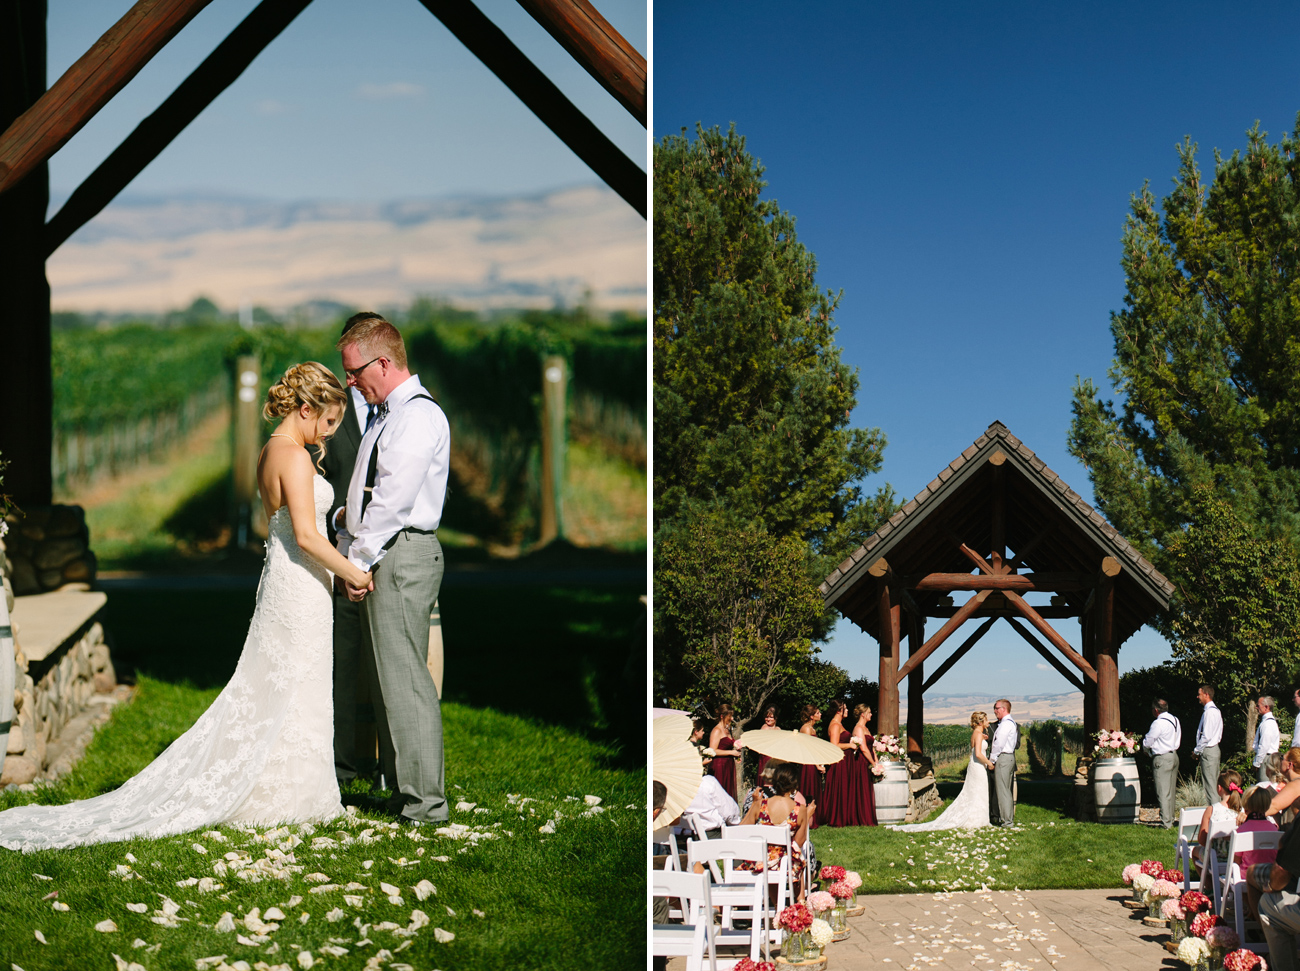 Basel_Cellars_Wedding_Photography_AMYIAN_36.JPG